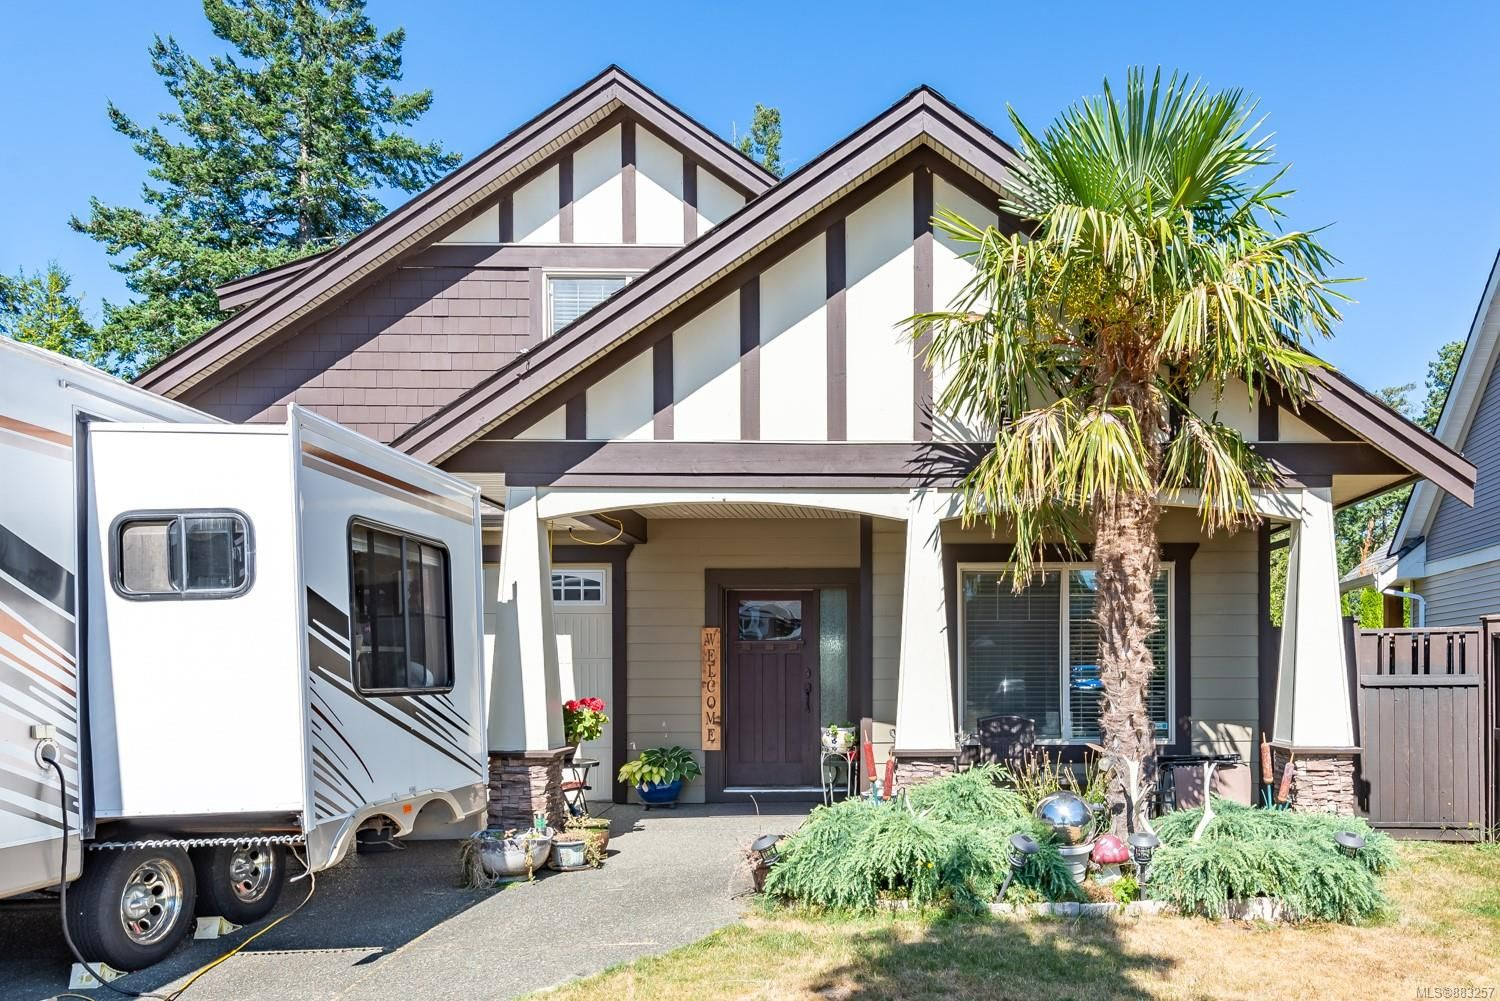 Main Photo: 311 Forester Ave in : CV Comox (Town of) House for sale (Comox Valley)  : MLS®# 883257